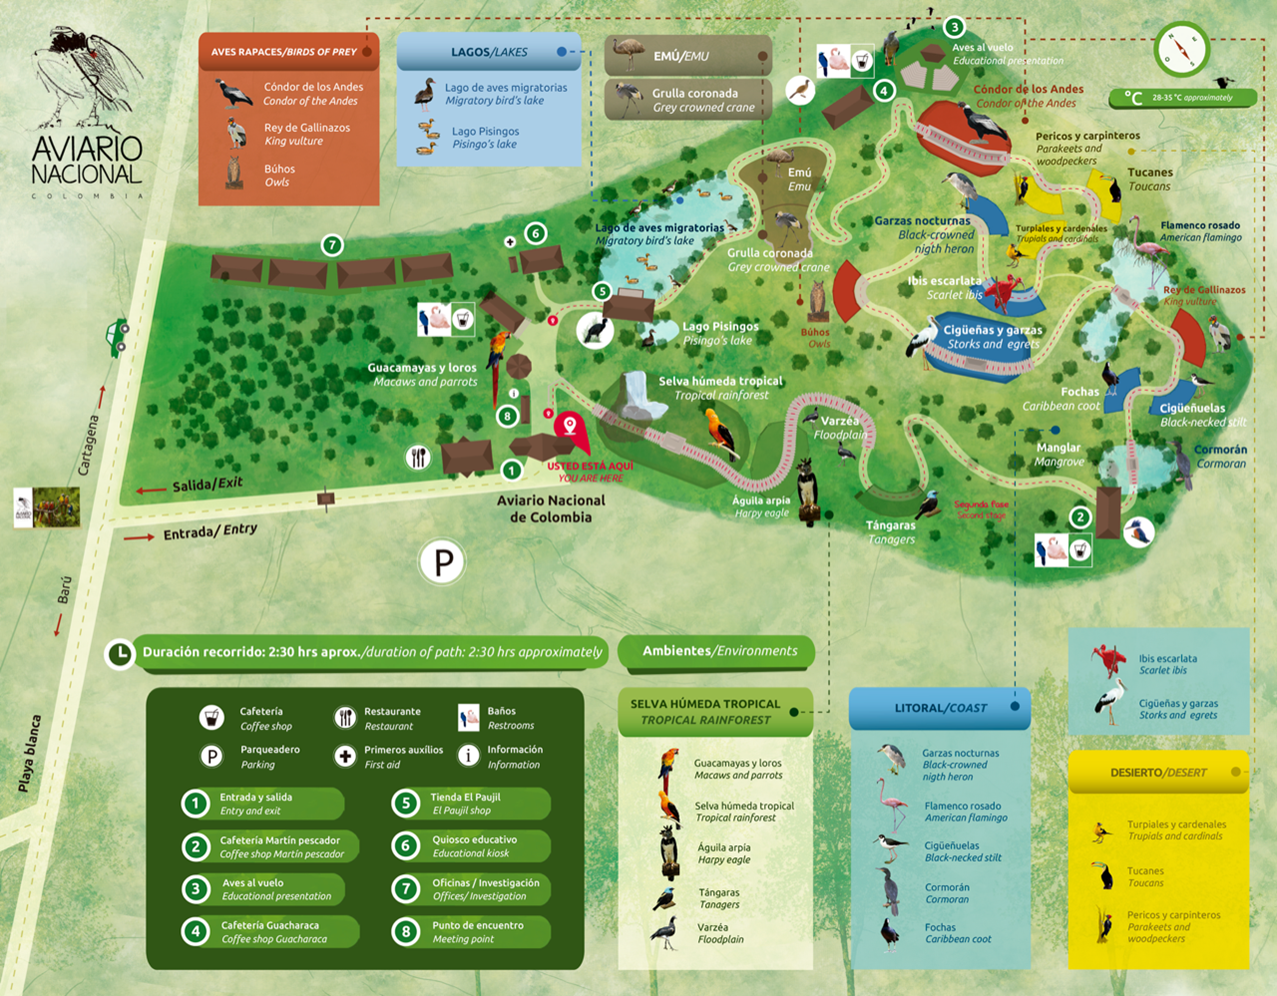 2019 Map of the Aviary